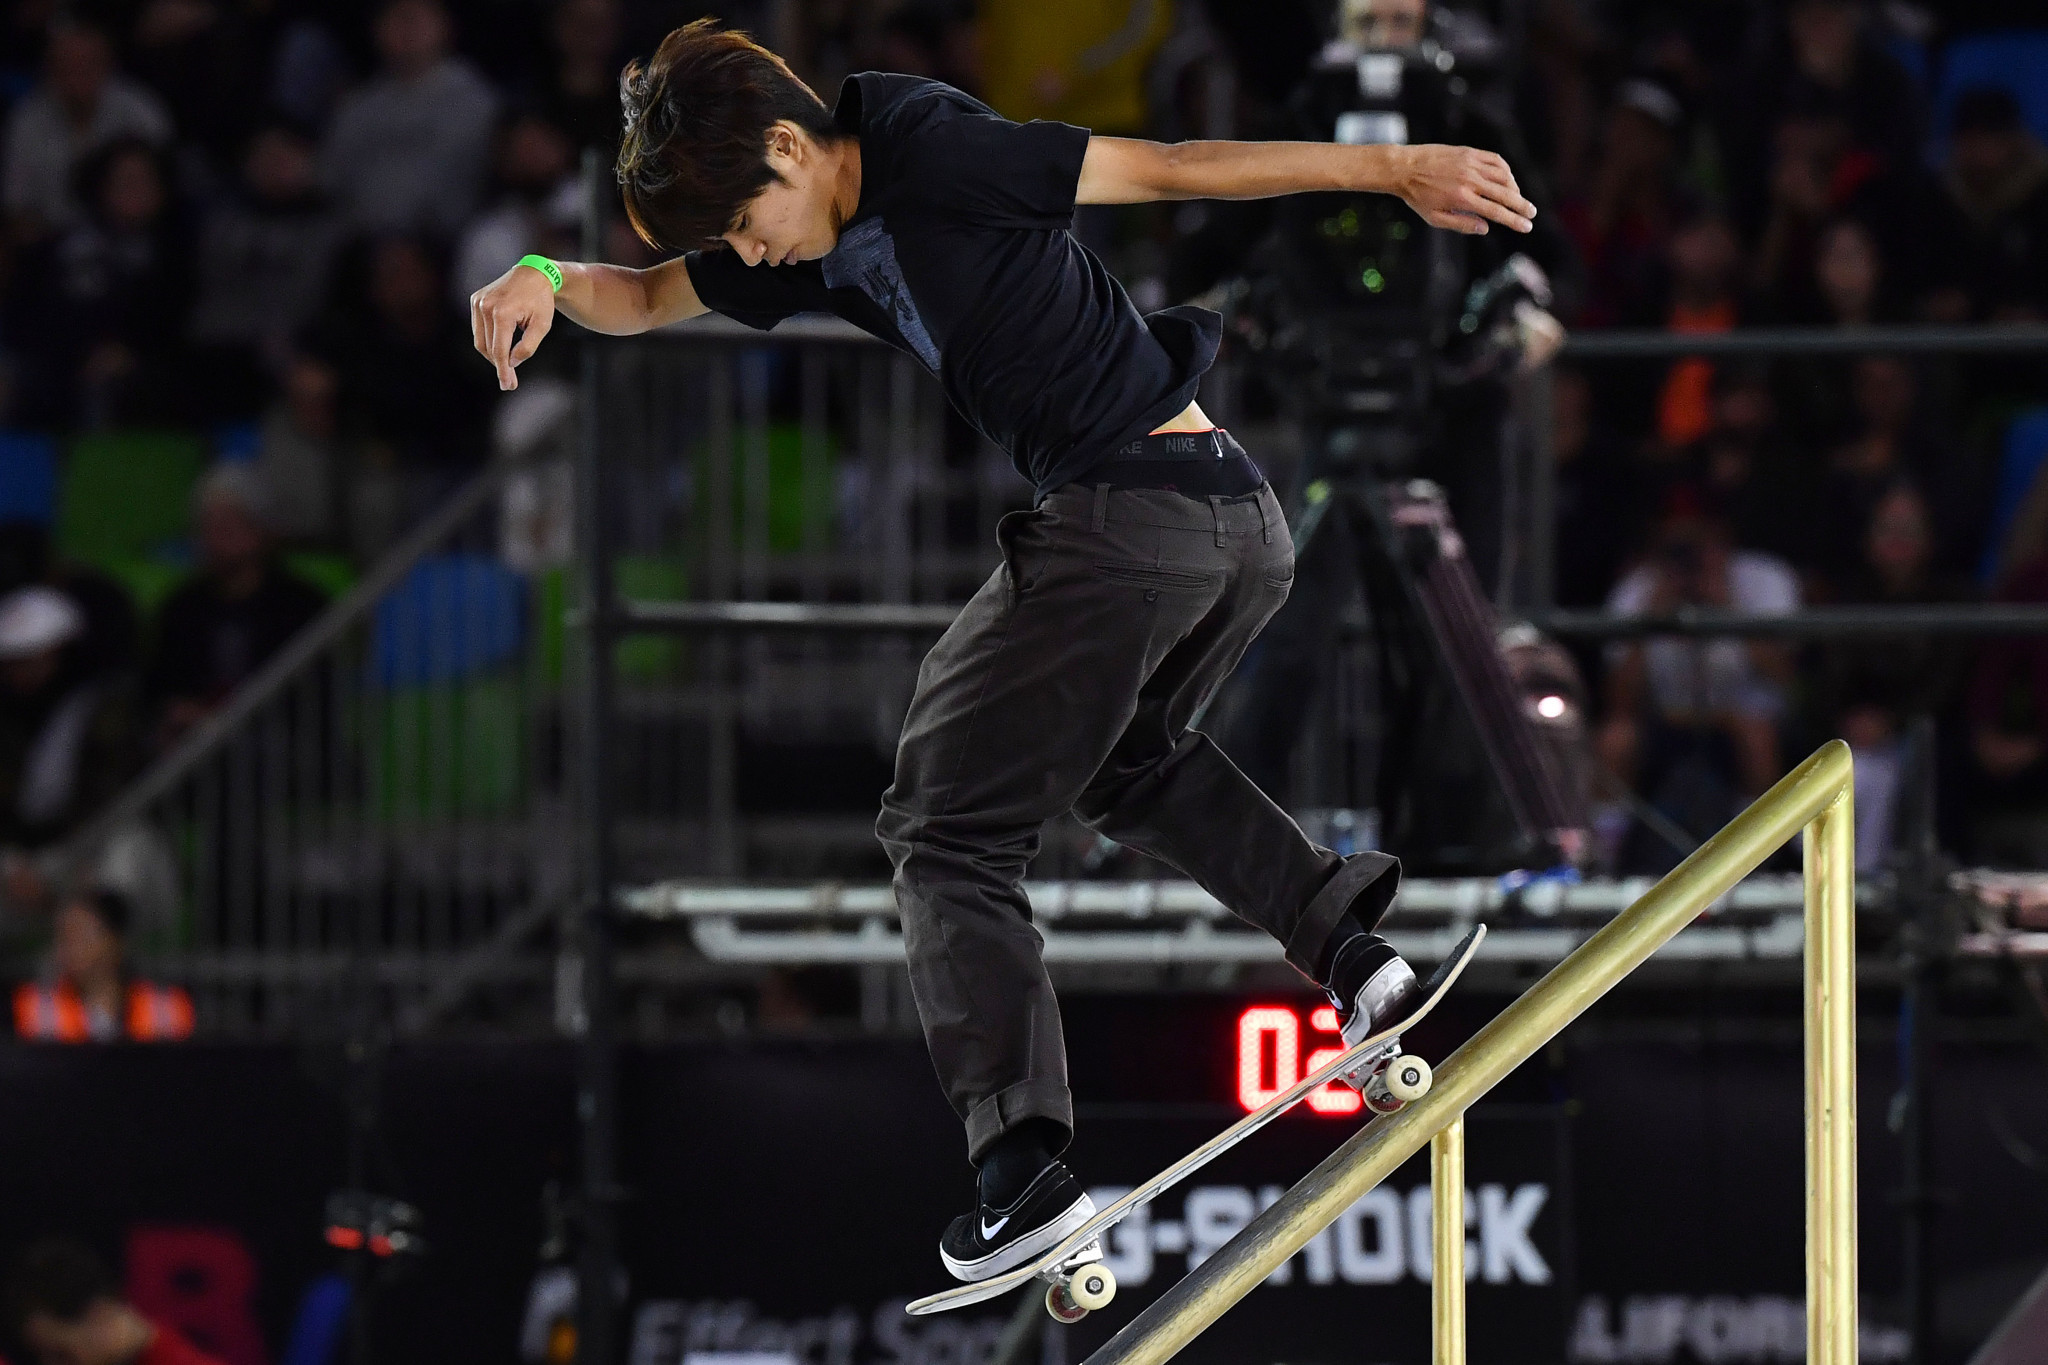 World Skate is set to relaunch Olympic skateboarding qualification ©Getty Images